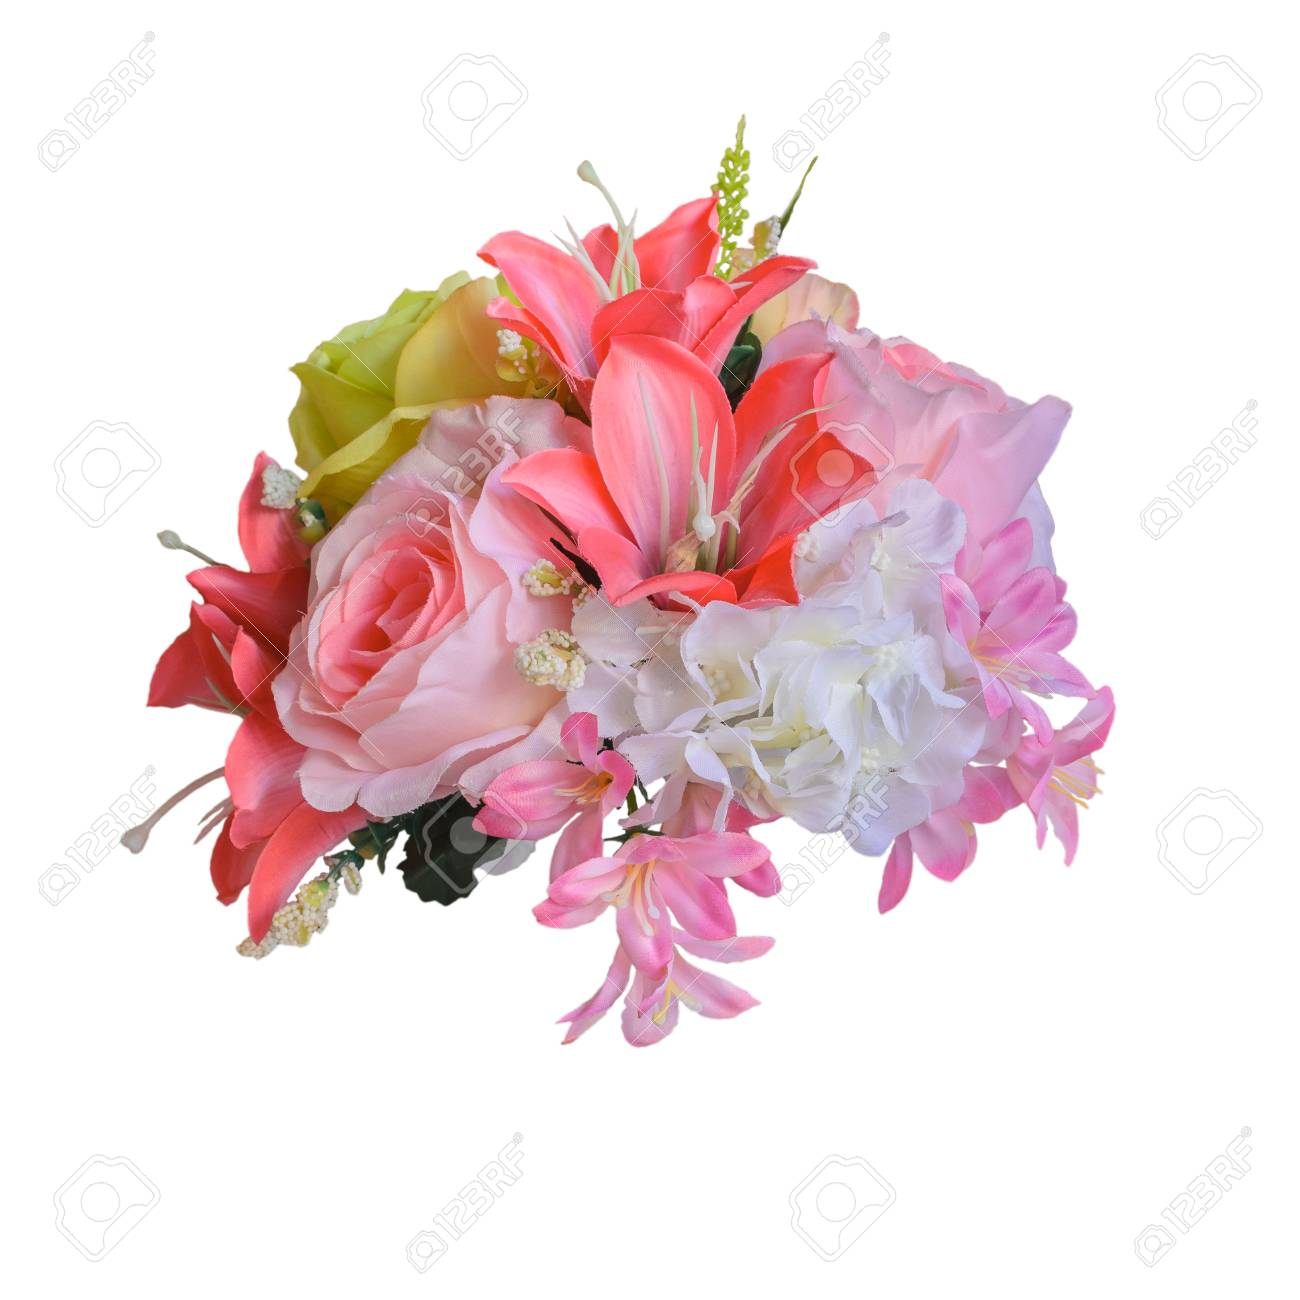 Beautiful Bright Bouquet Of Roses And Other Flowers On A White